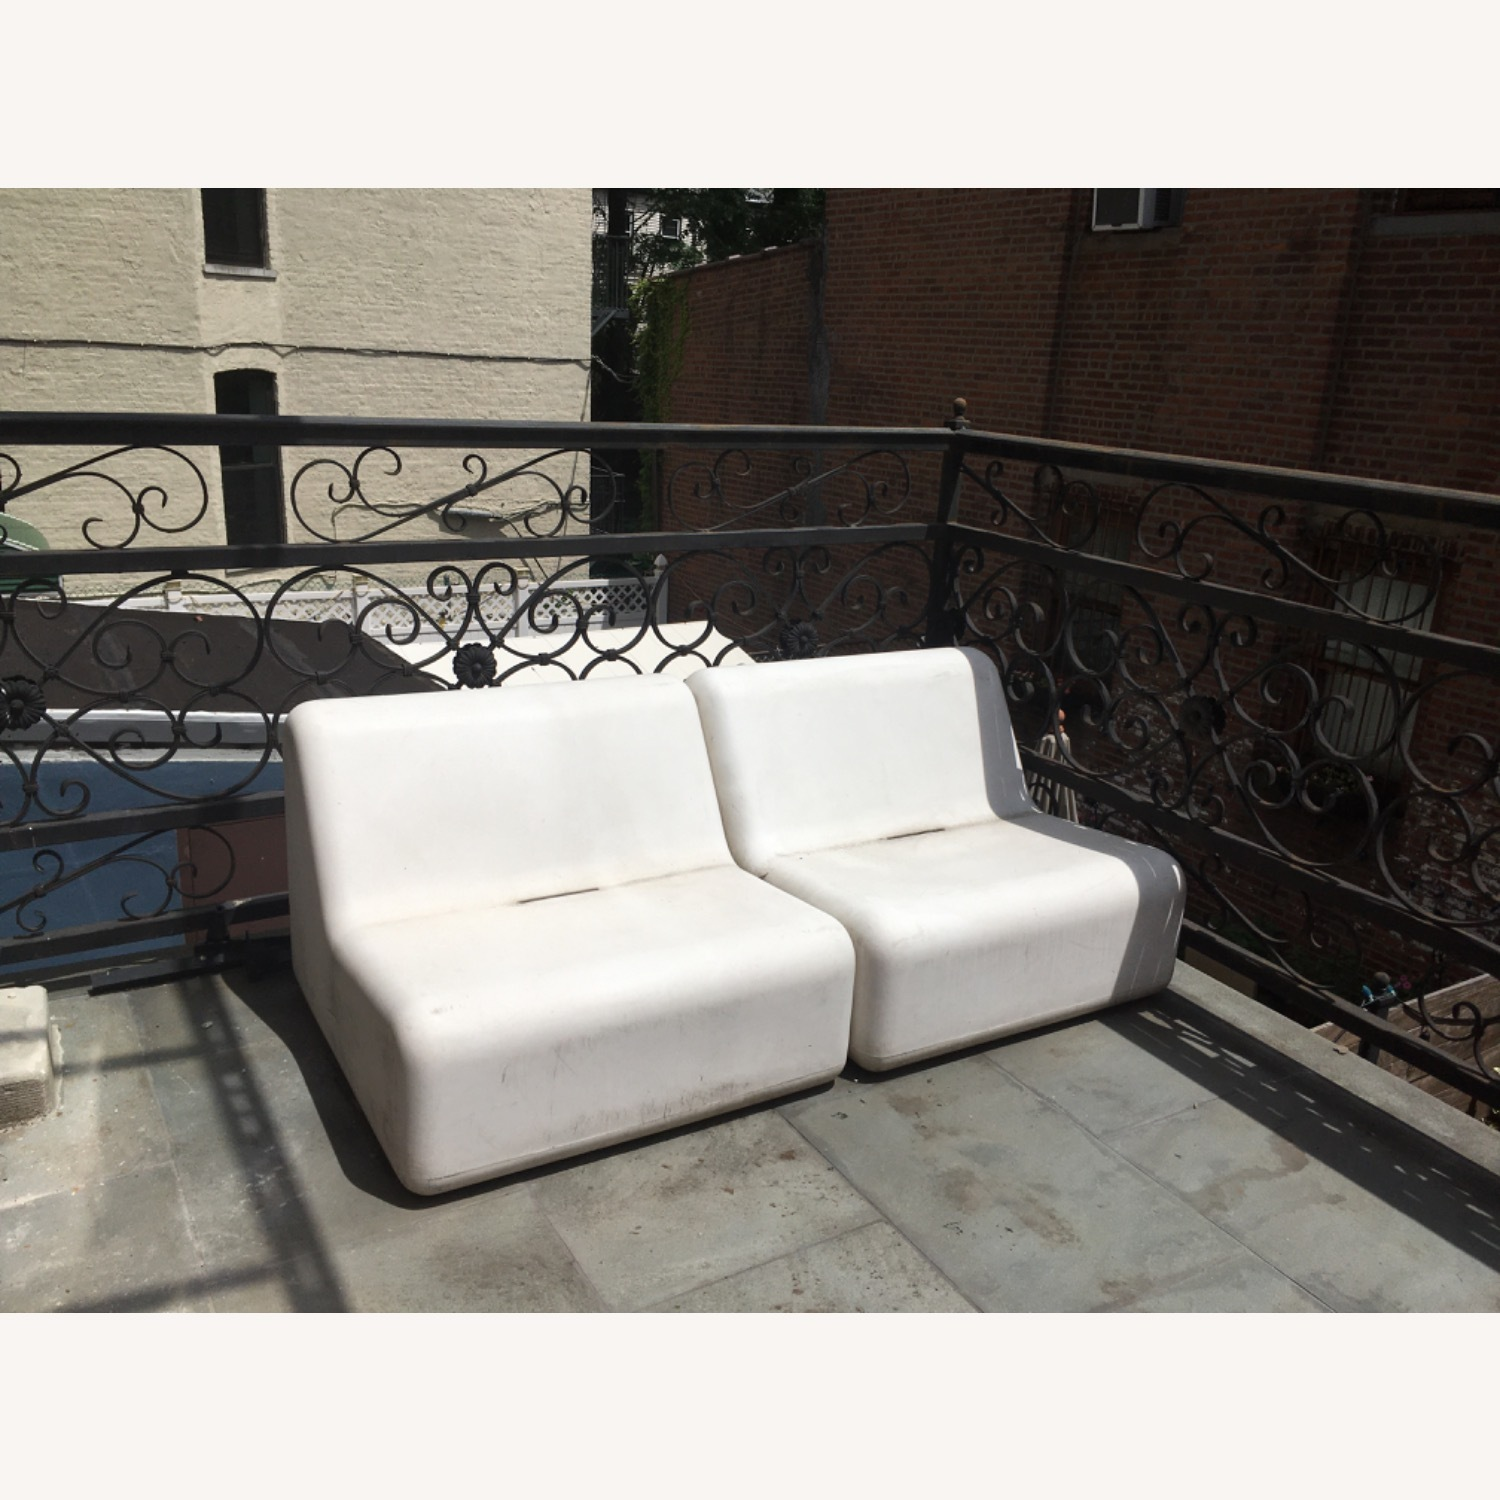 Modern Recycled Plastic Outdoor Seating - image-5